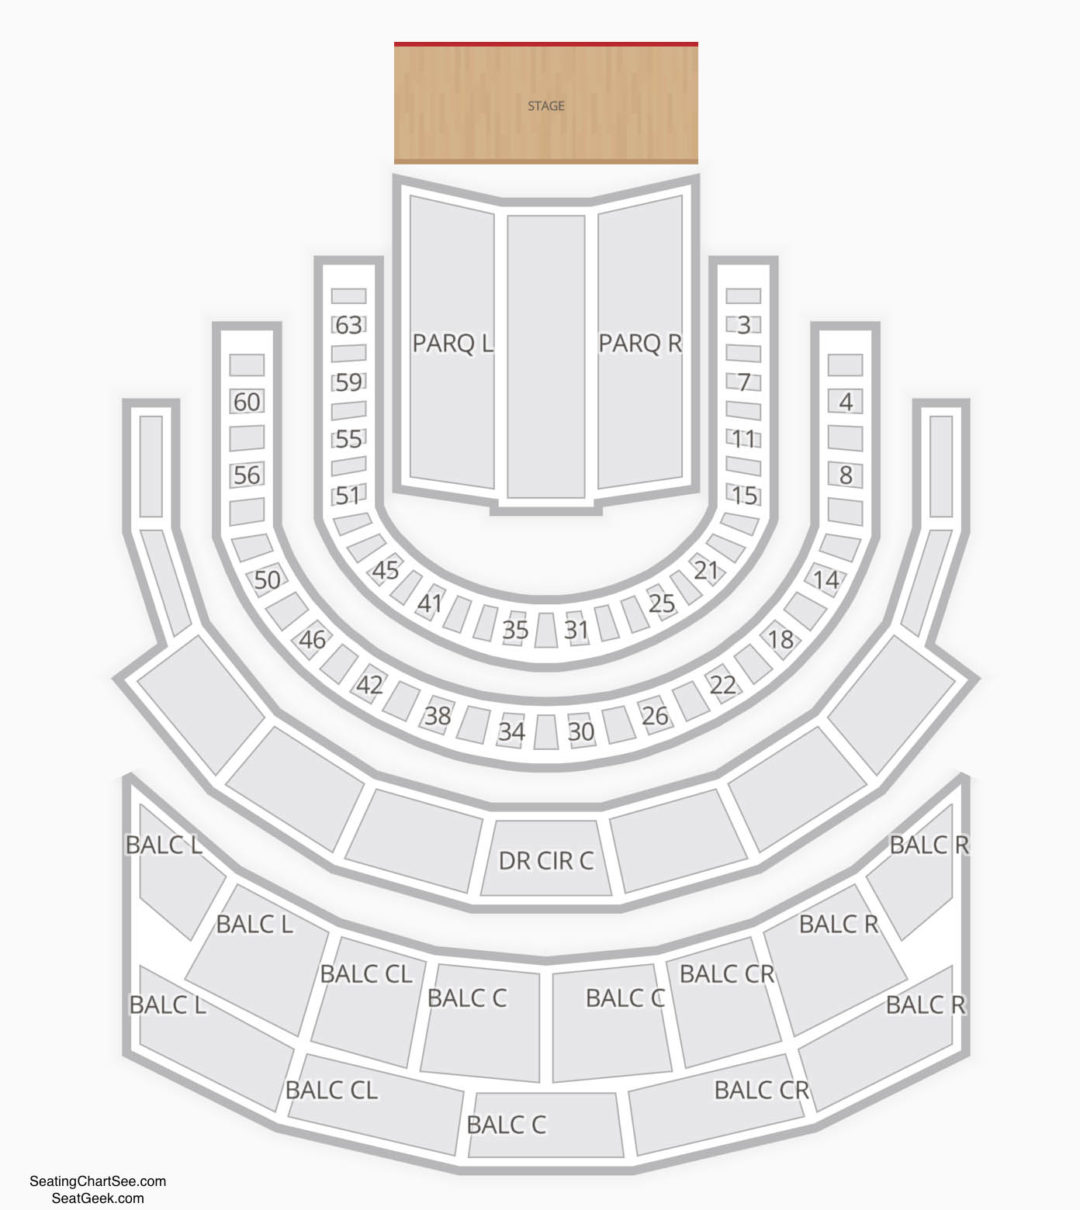 Carnegie hall stern auditorium seating chart seating charts